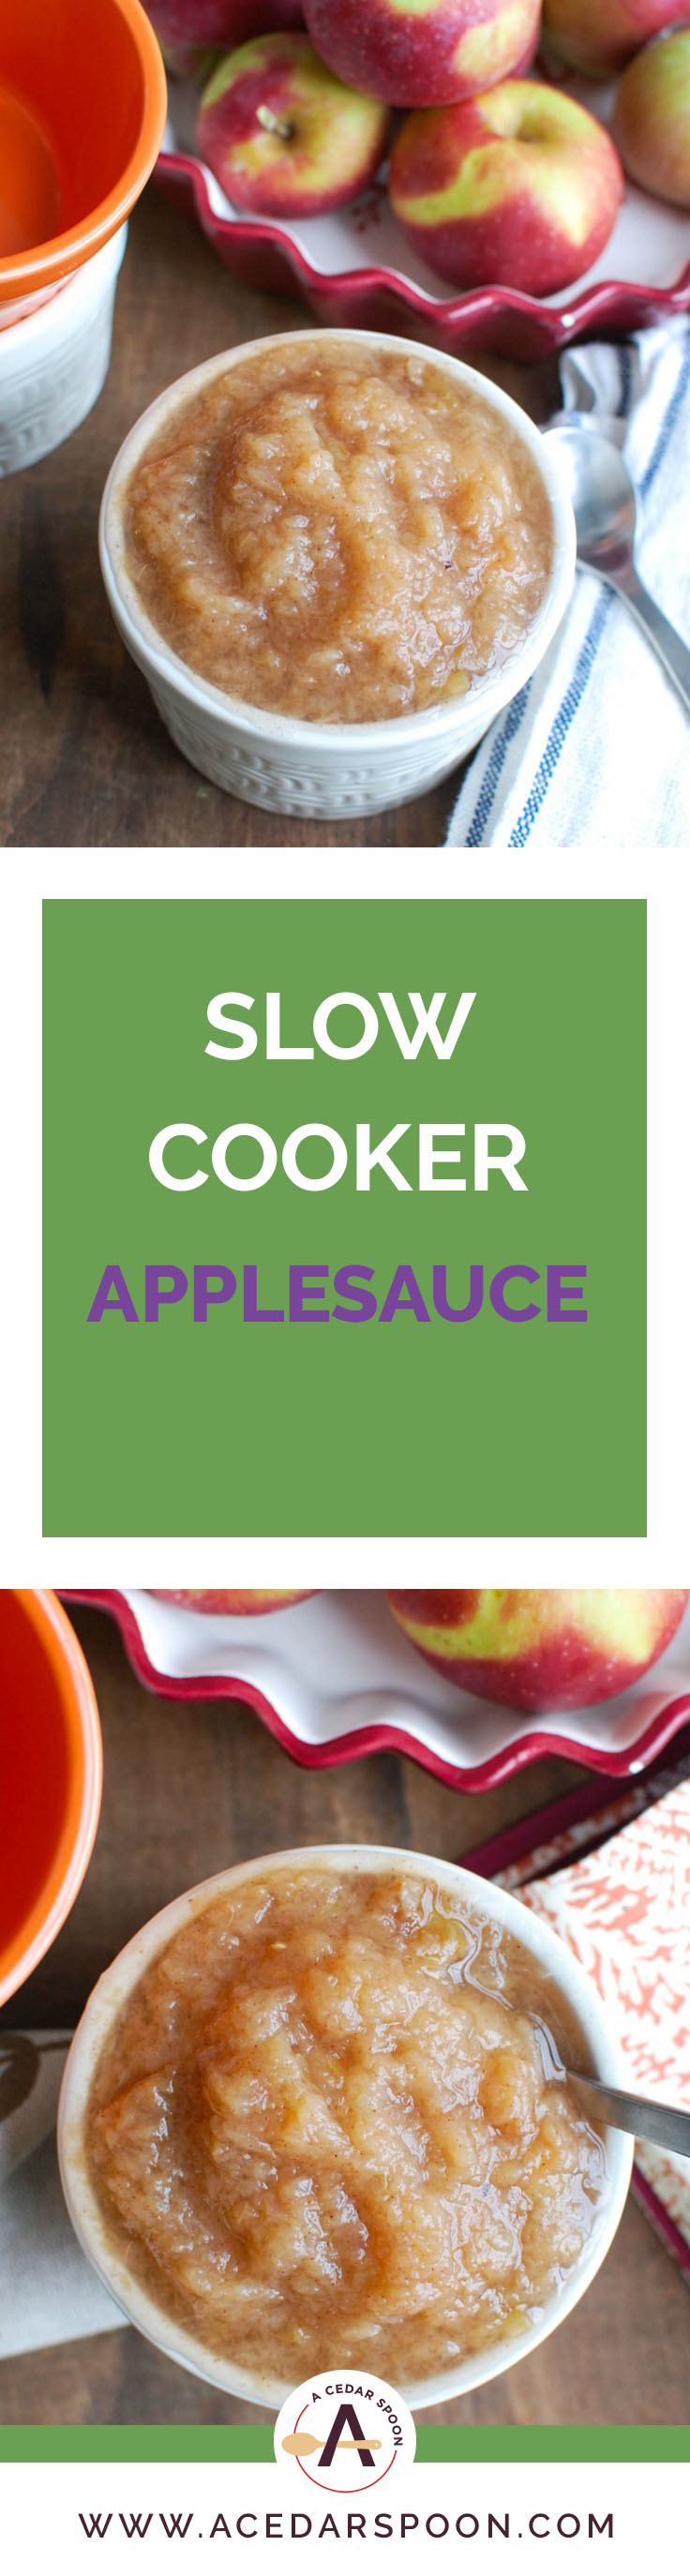 Once you make Crockpot Applesauce you will be making it time and time again. This is a favorite in my house and I love that I control all of the ingredients that go in it. When you go apple picking make a big batch of this to store in your fridge!